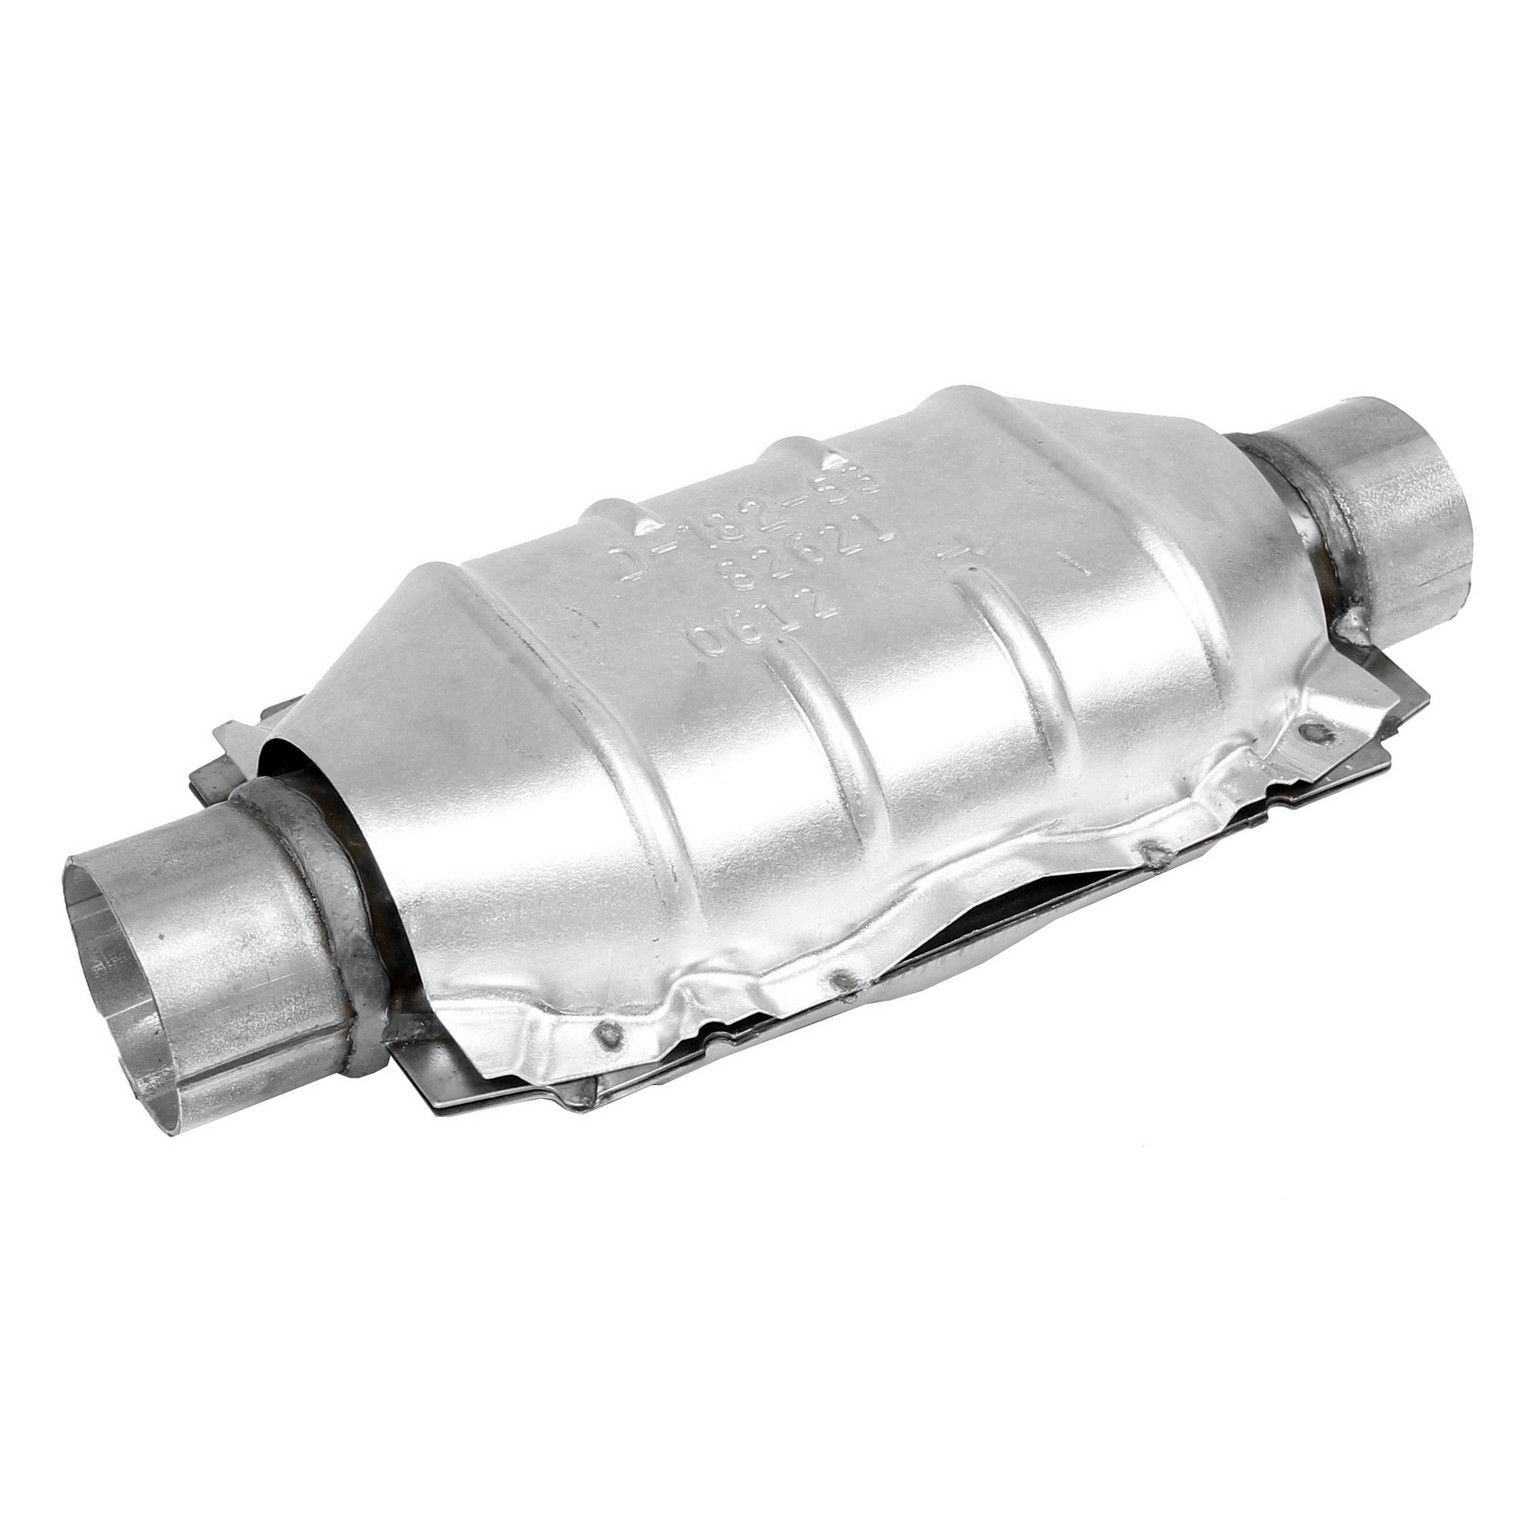 Volvo V40 Catalytic Converter Replacement (Bosal, DEC